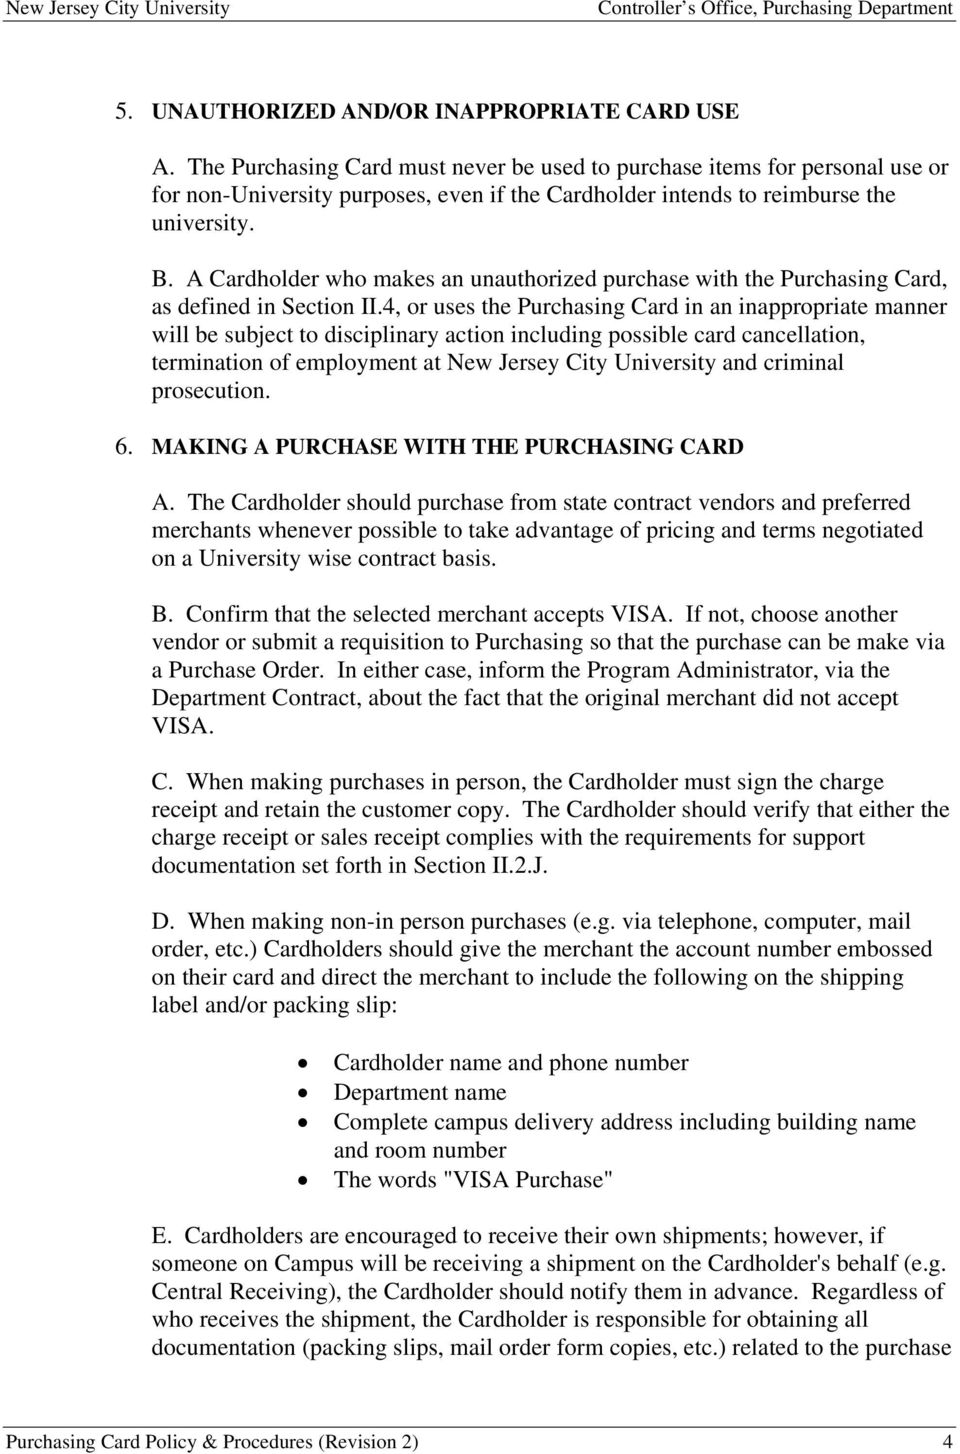 A Cardholder who makes an unauthorized purchase with the Purchasing Card, as defined in Section II.